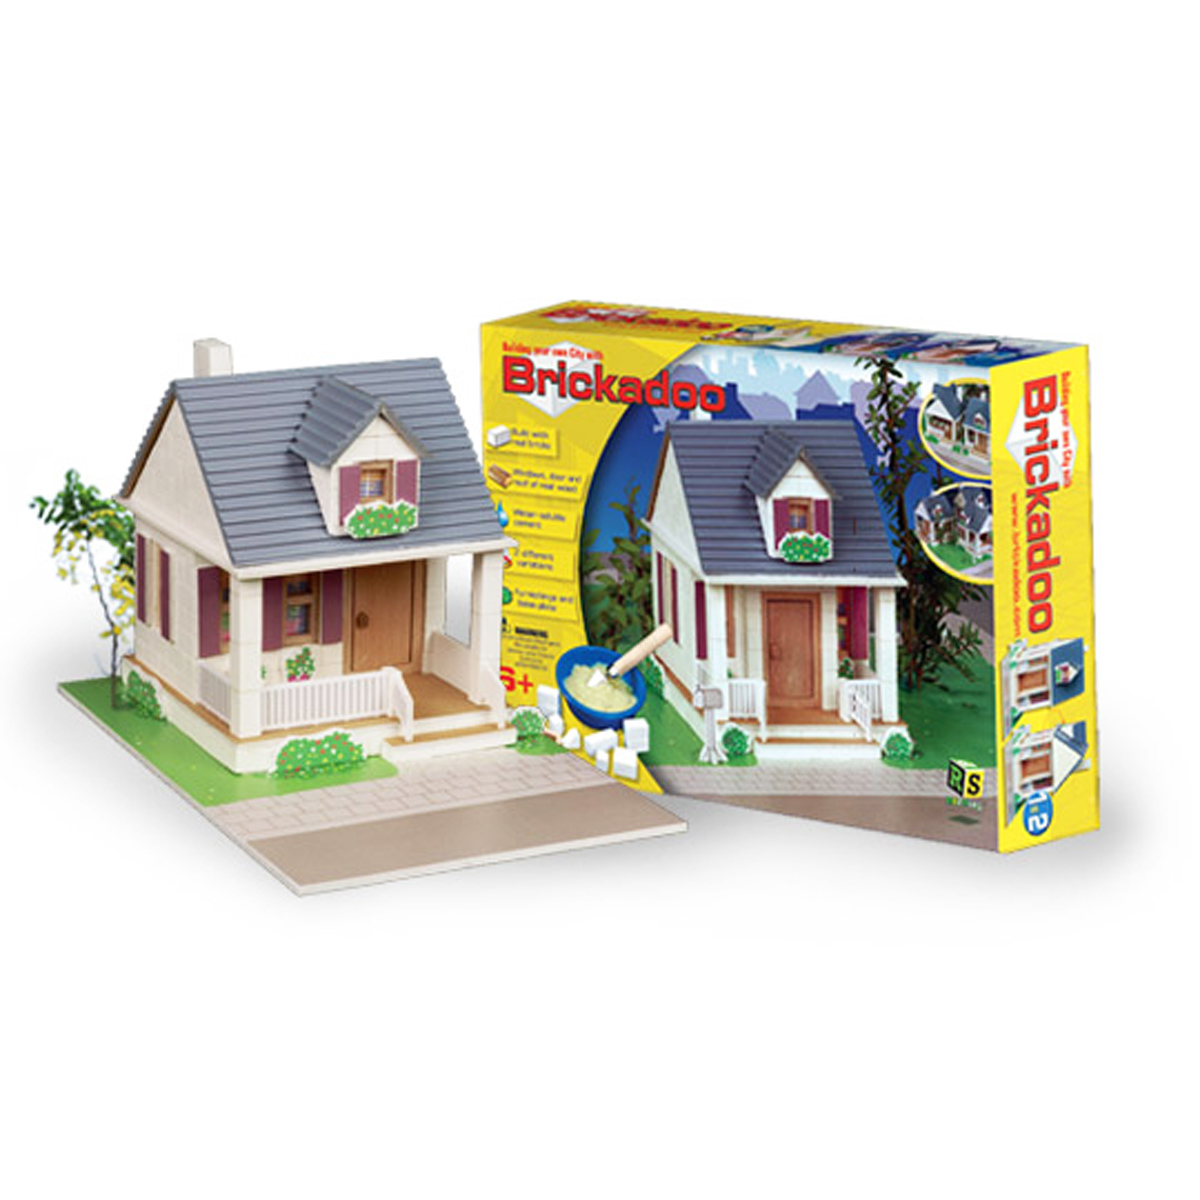 Construction Toy Brickadoo House Building Blocks Rs2play